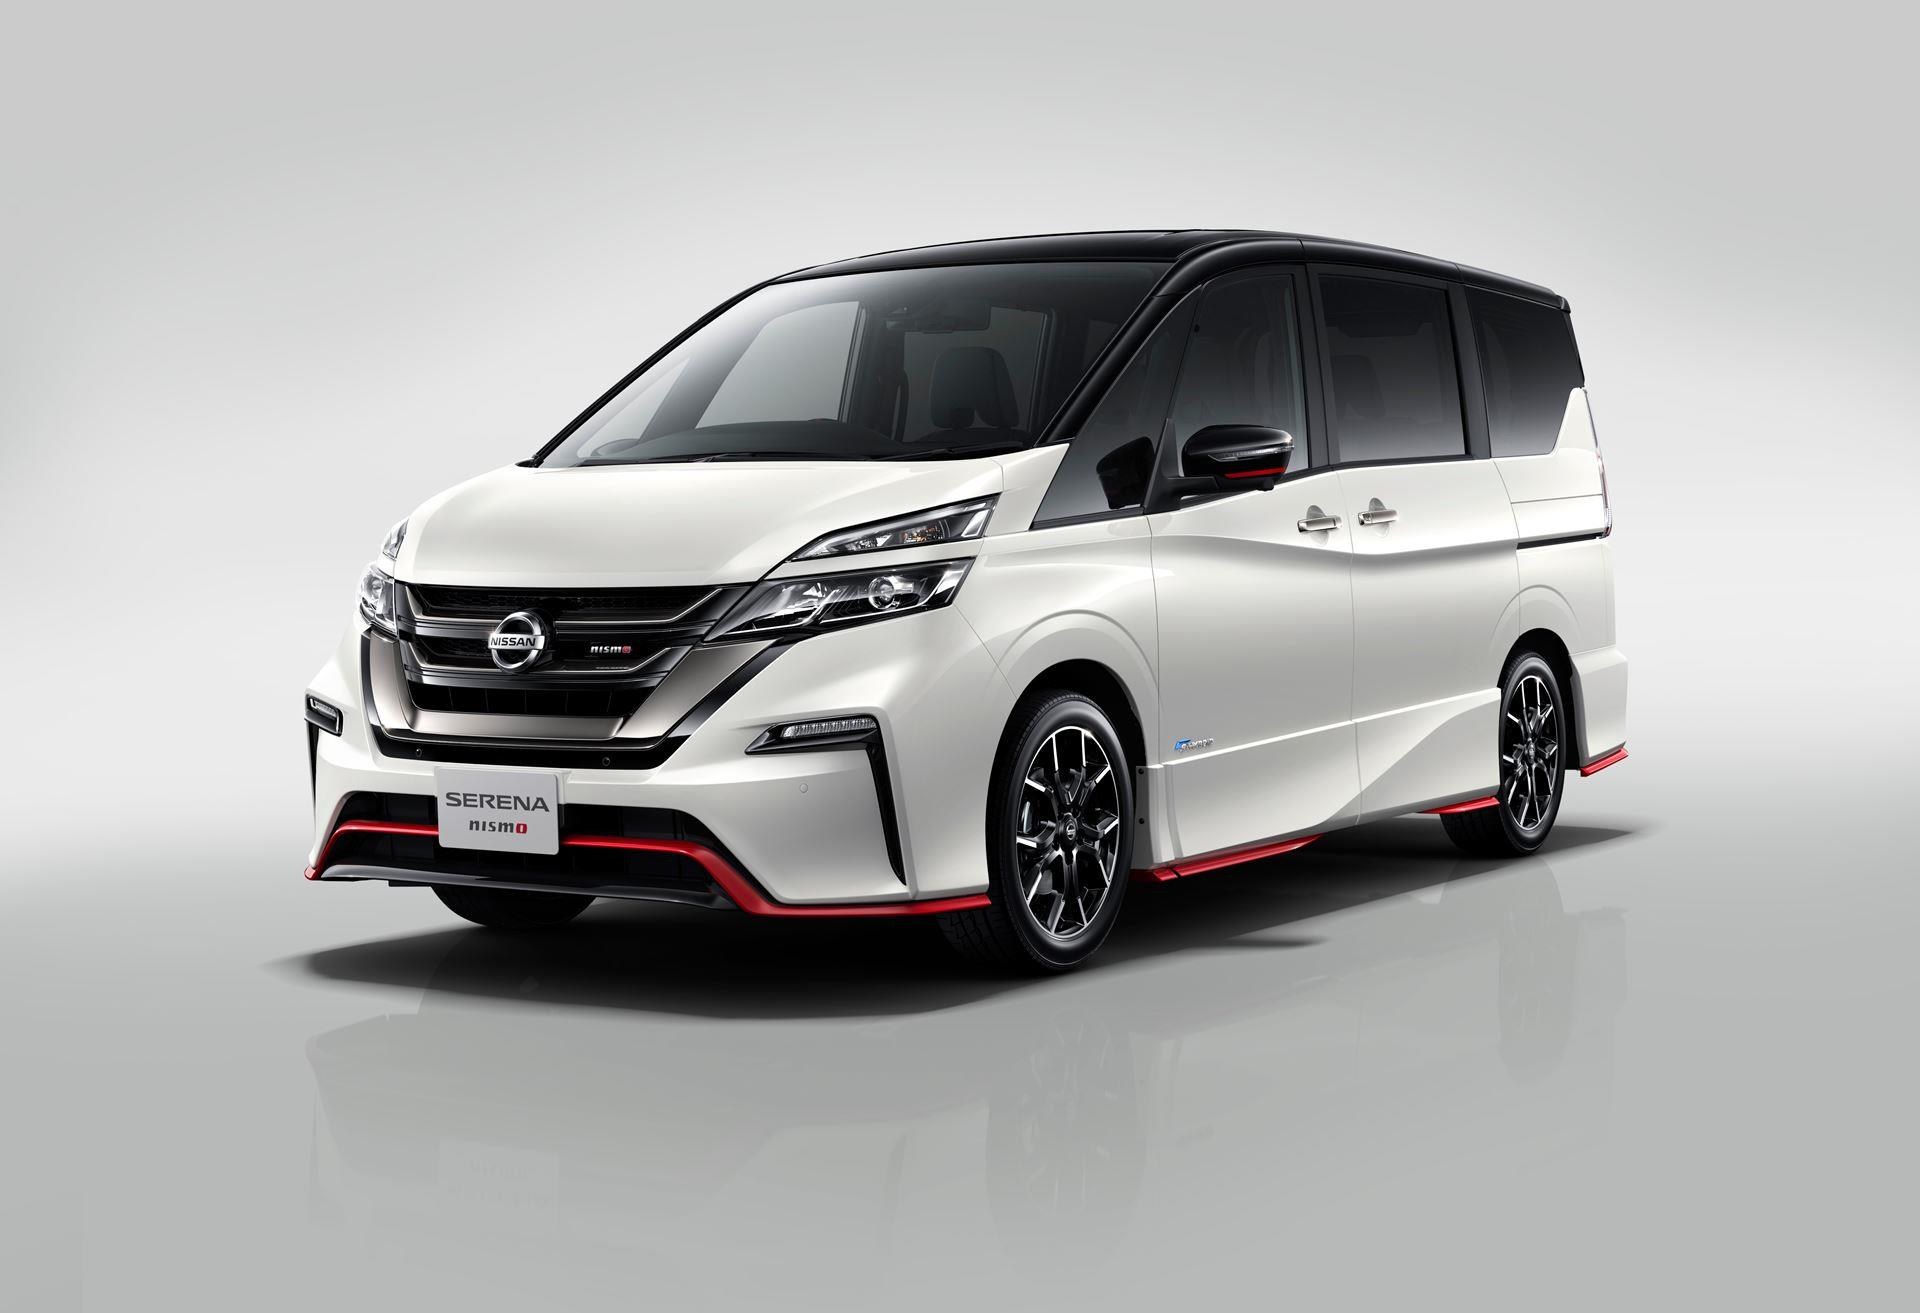 2018 nissan serena nismo technical specifications and data engine dimensions and mechanical details conceptcarz com